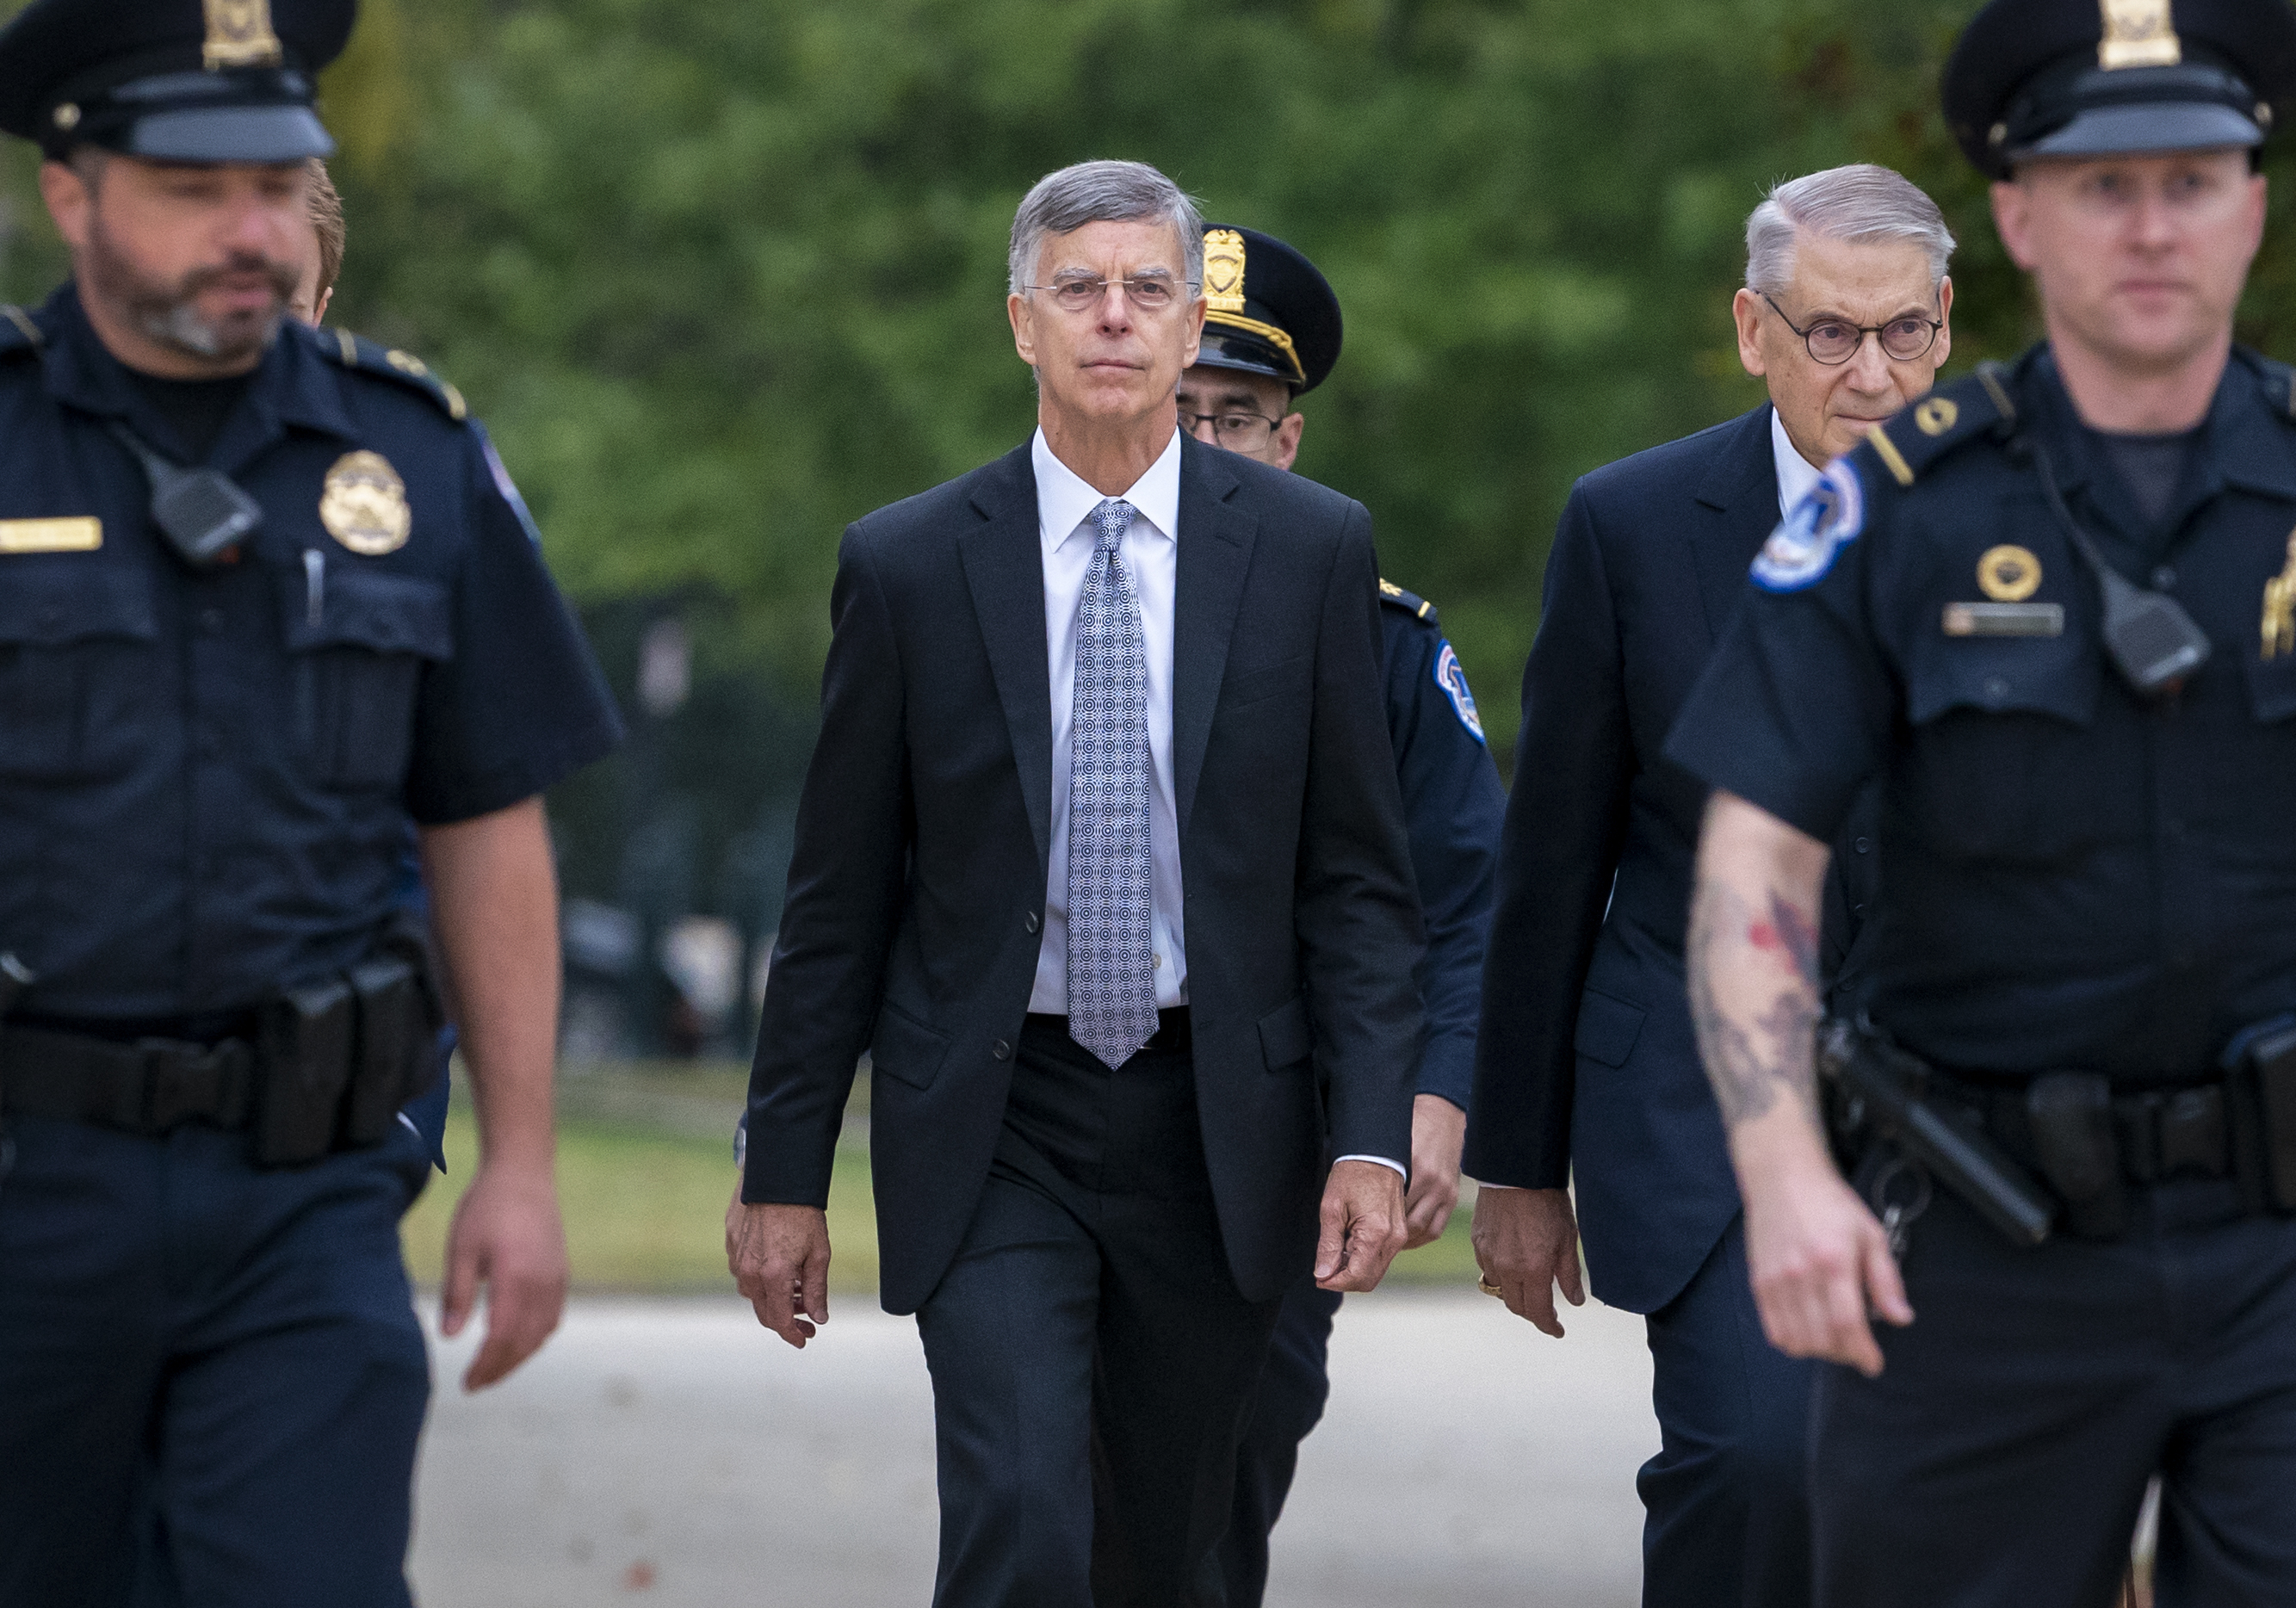 Ambassador William Taylor, is escorted by U.S. Capitol Police